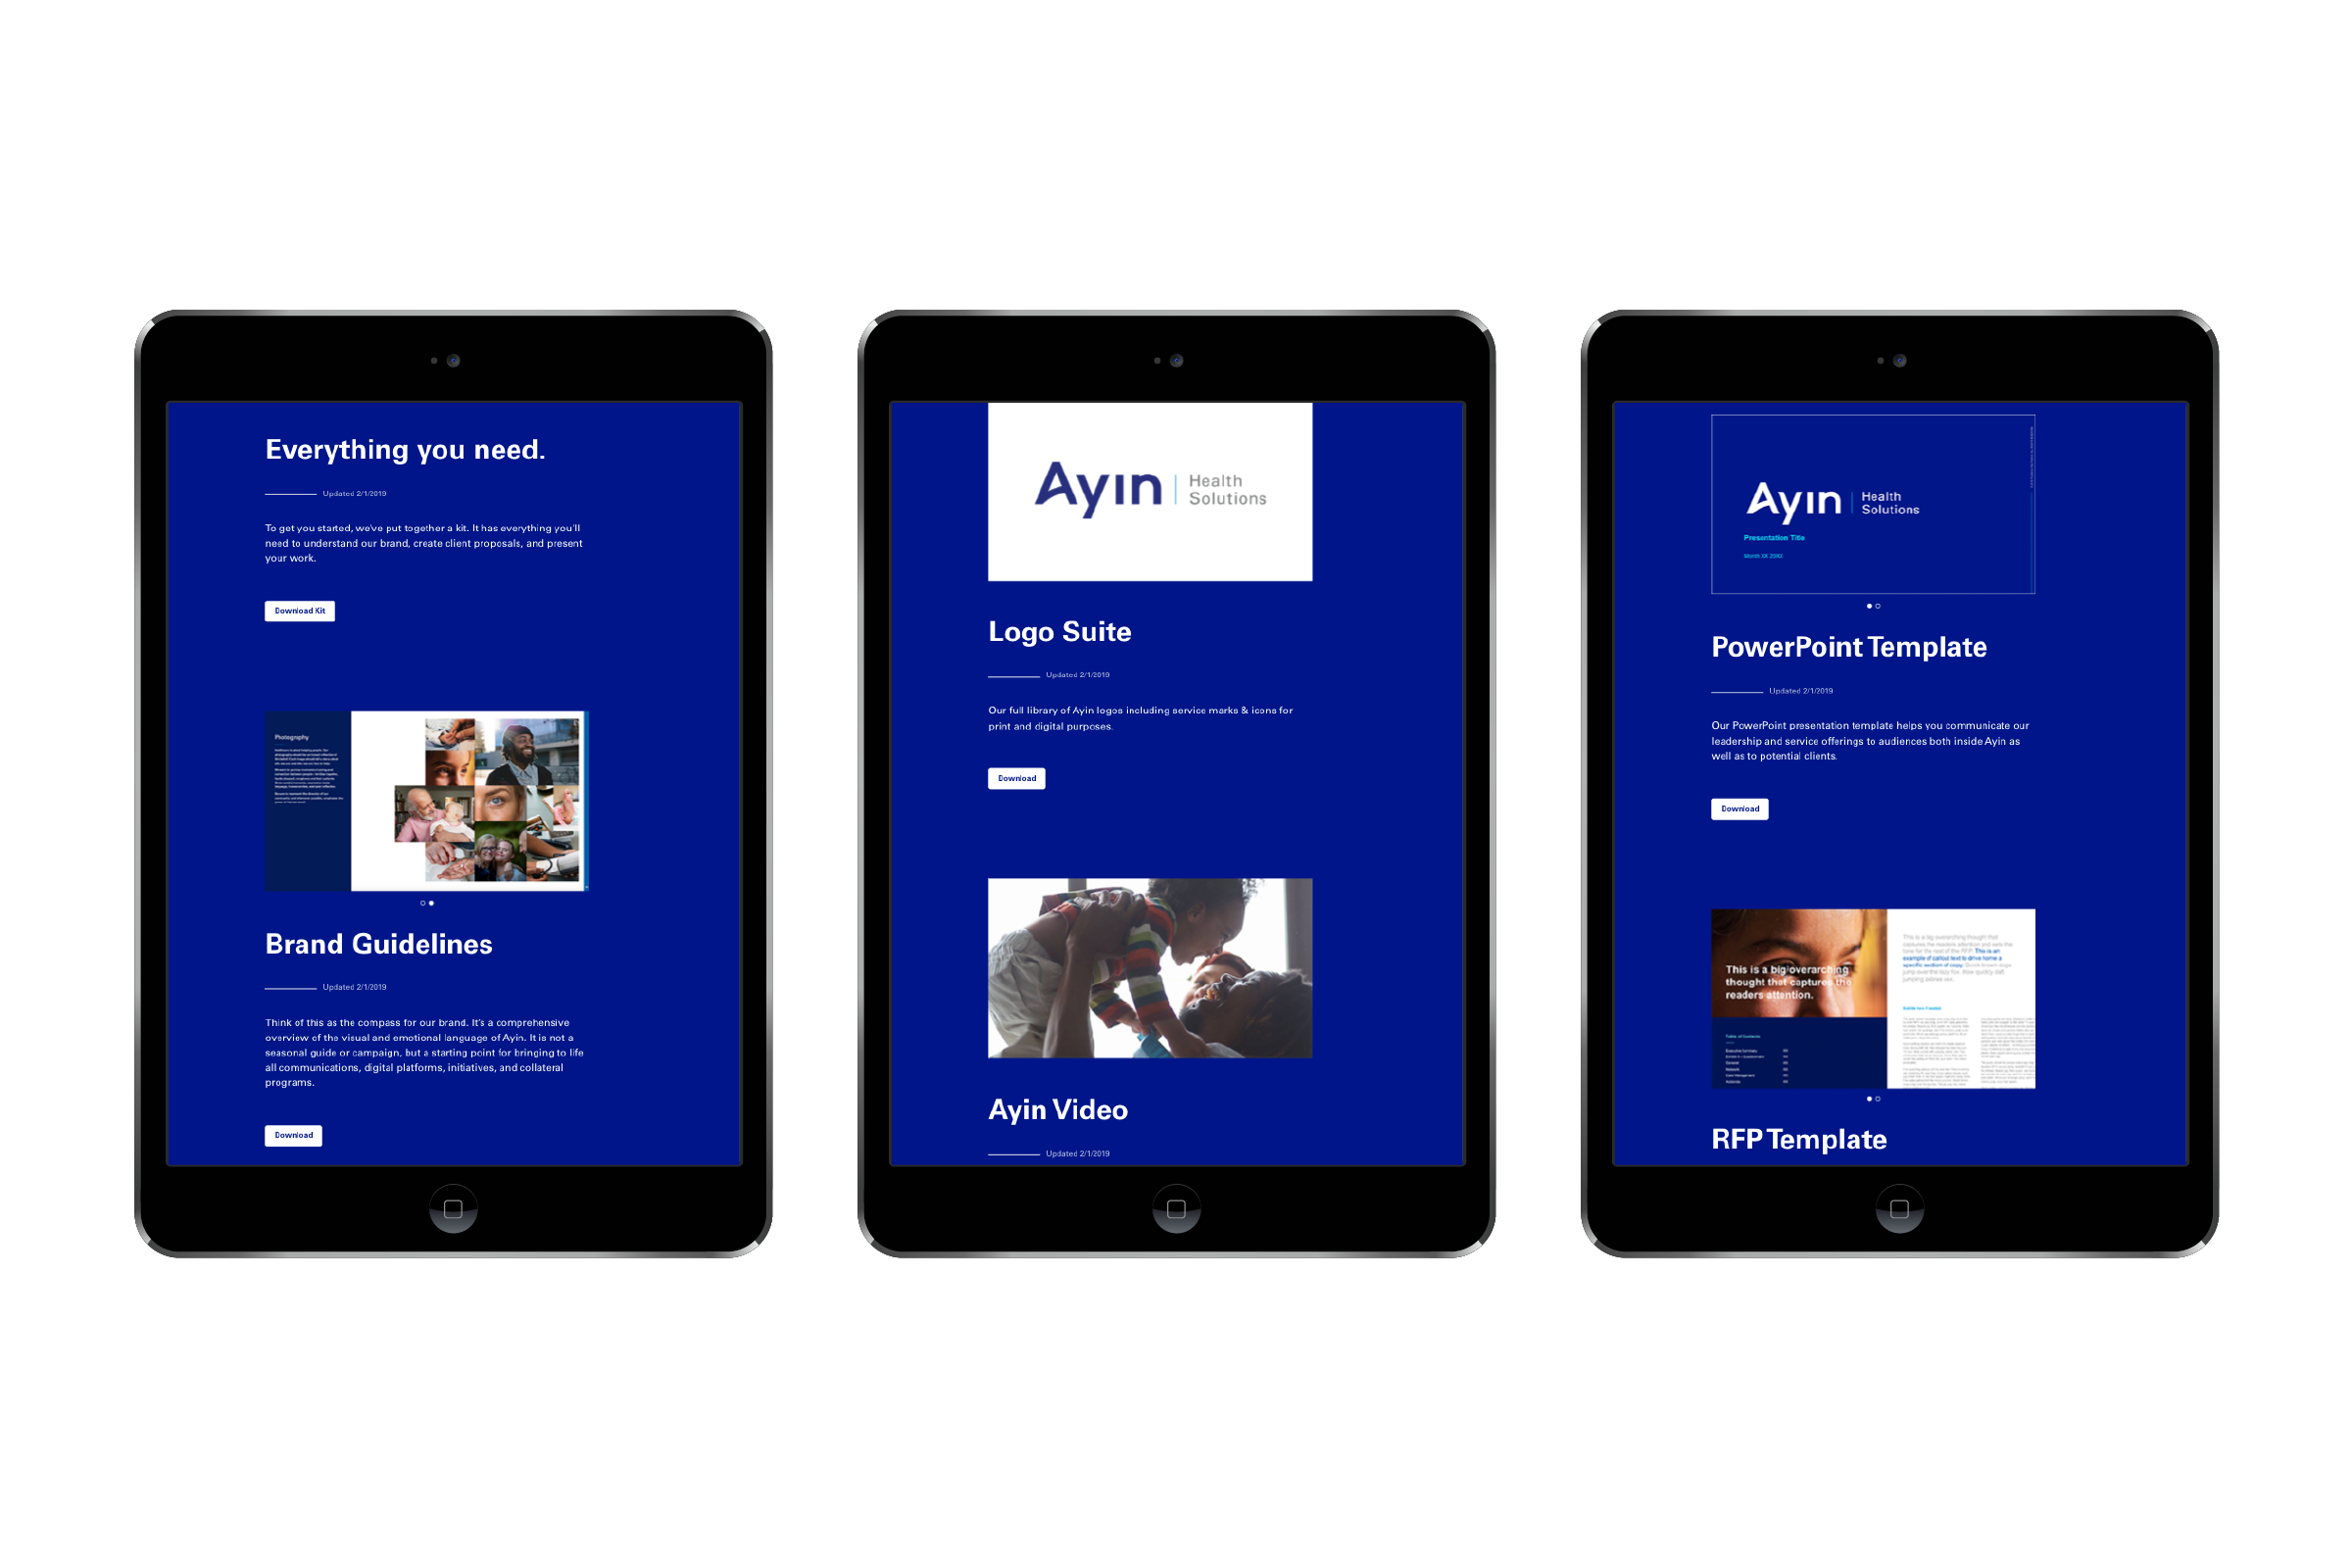 Ayin Health Solutions marketing material sharing portal